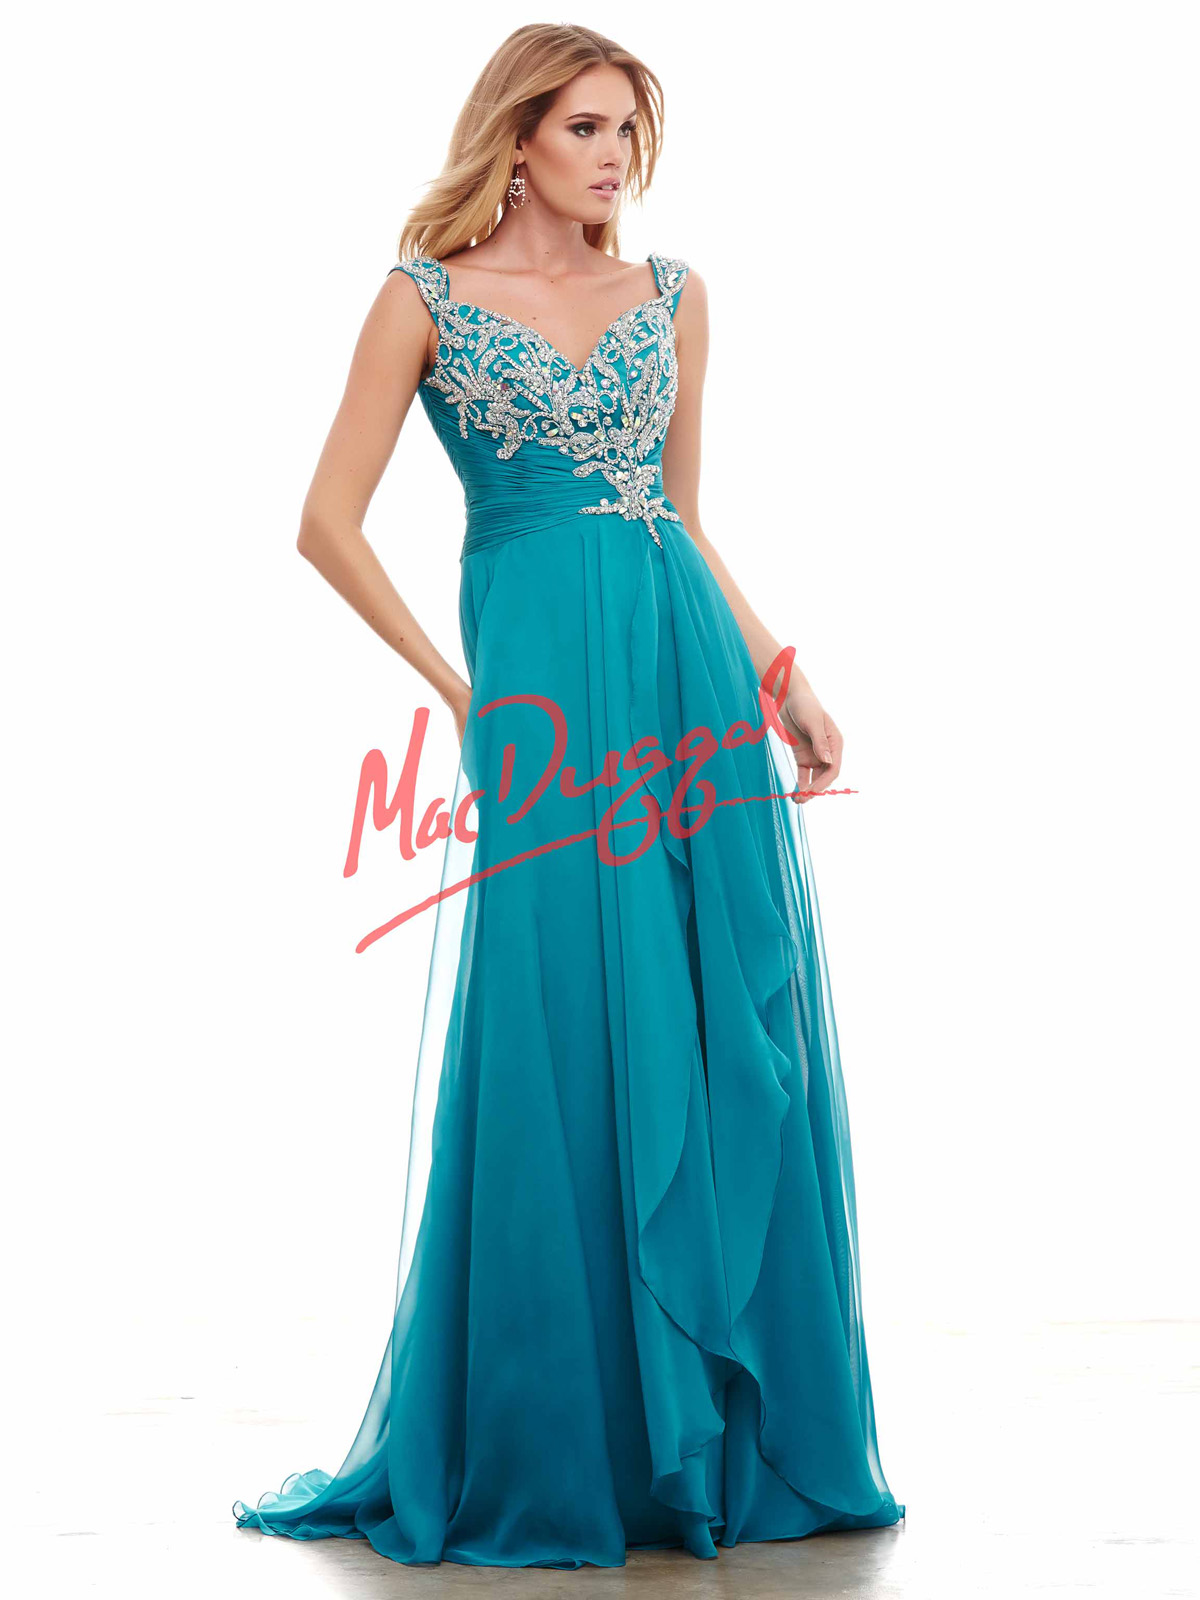 Prom Dresses Archives - Page 503 of 515 - Holiday Dresses